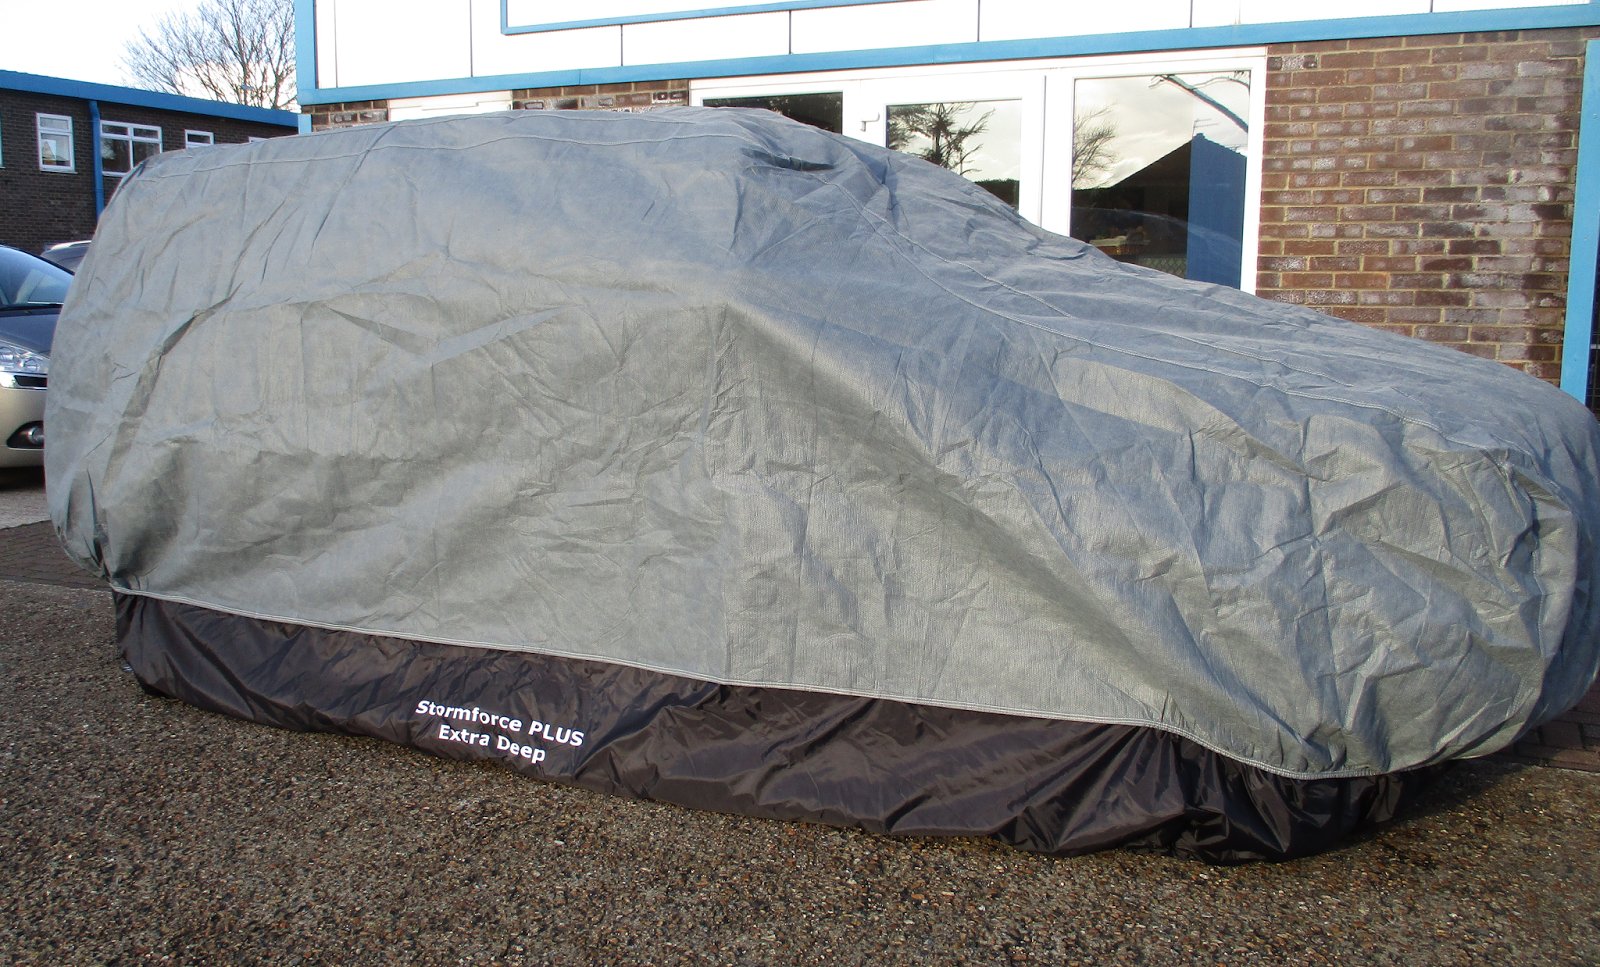 ... Layer Stormforce Cover by the factory its a bespoke hand finished improvement where an extra deep 360 degree hemline skirt is added to the cover ... & The Car Cover Blog